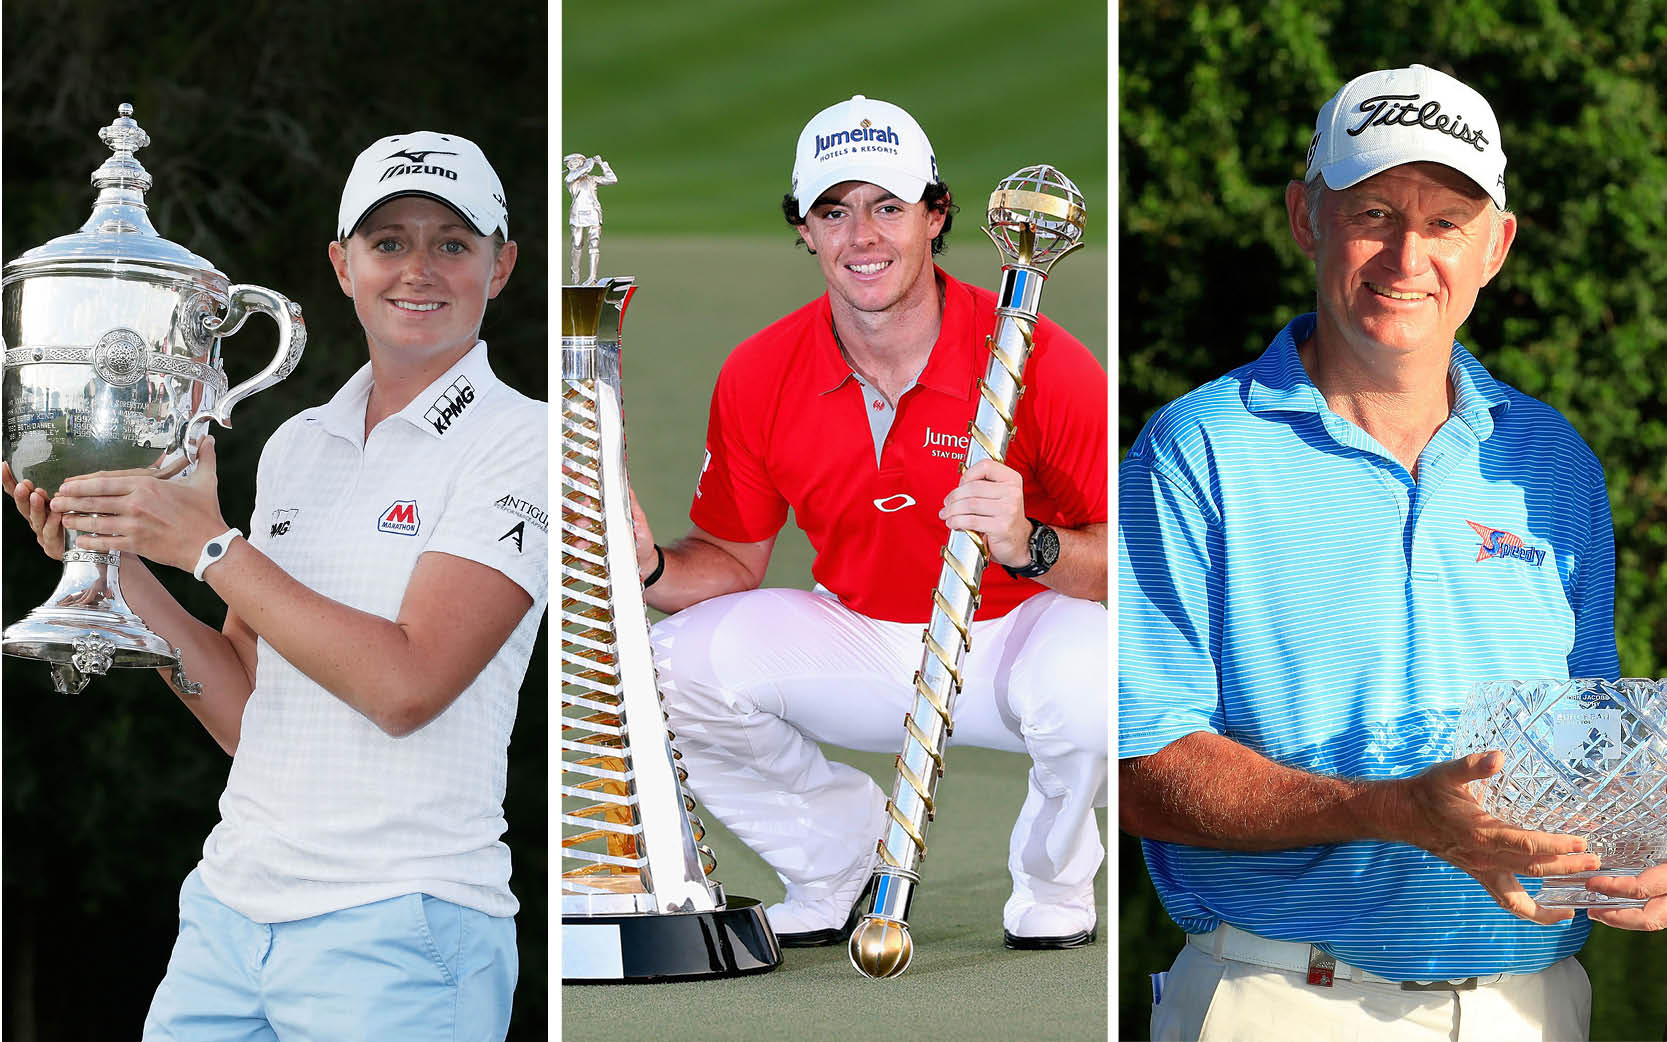 Stacy Lewis, Rory McIlroy and Roger Chapman were voted 2012 GWAA Players of the Year.